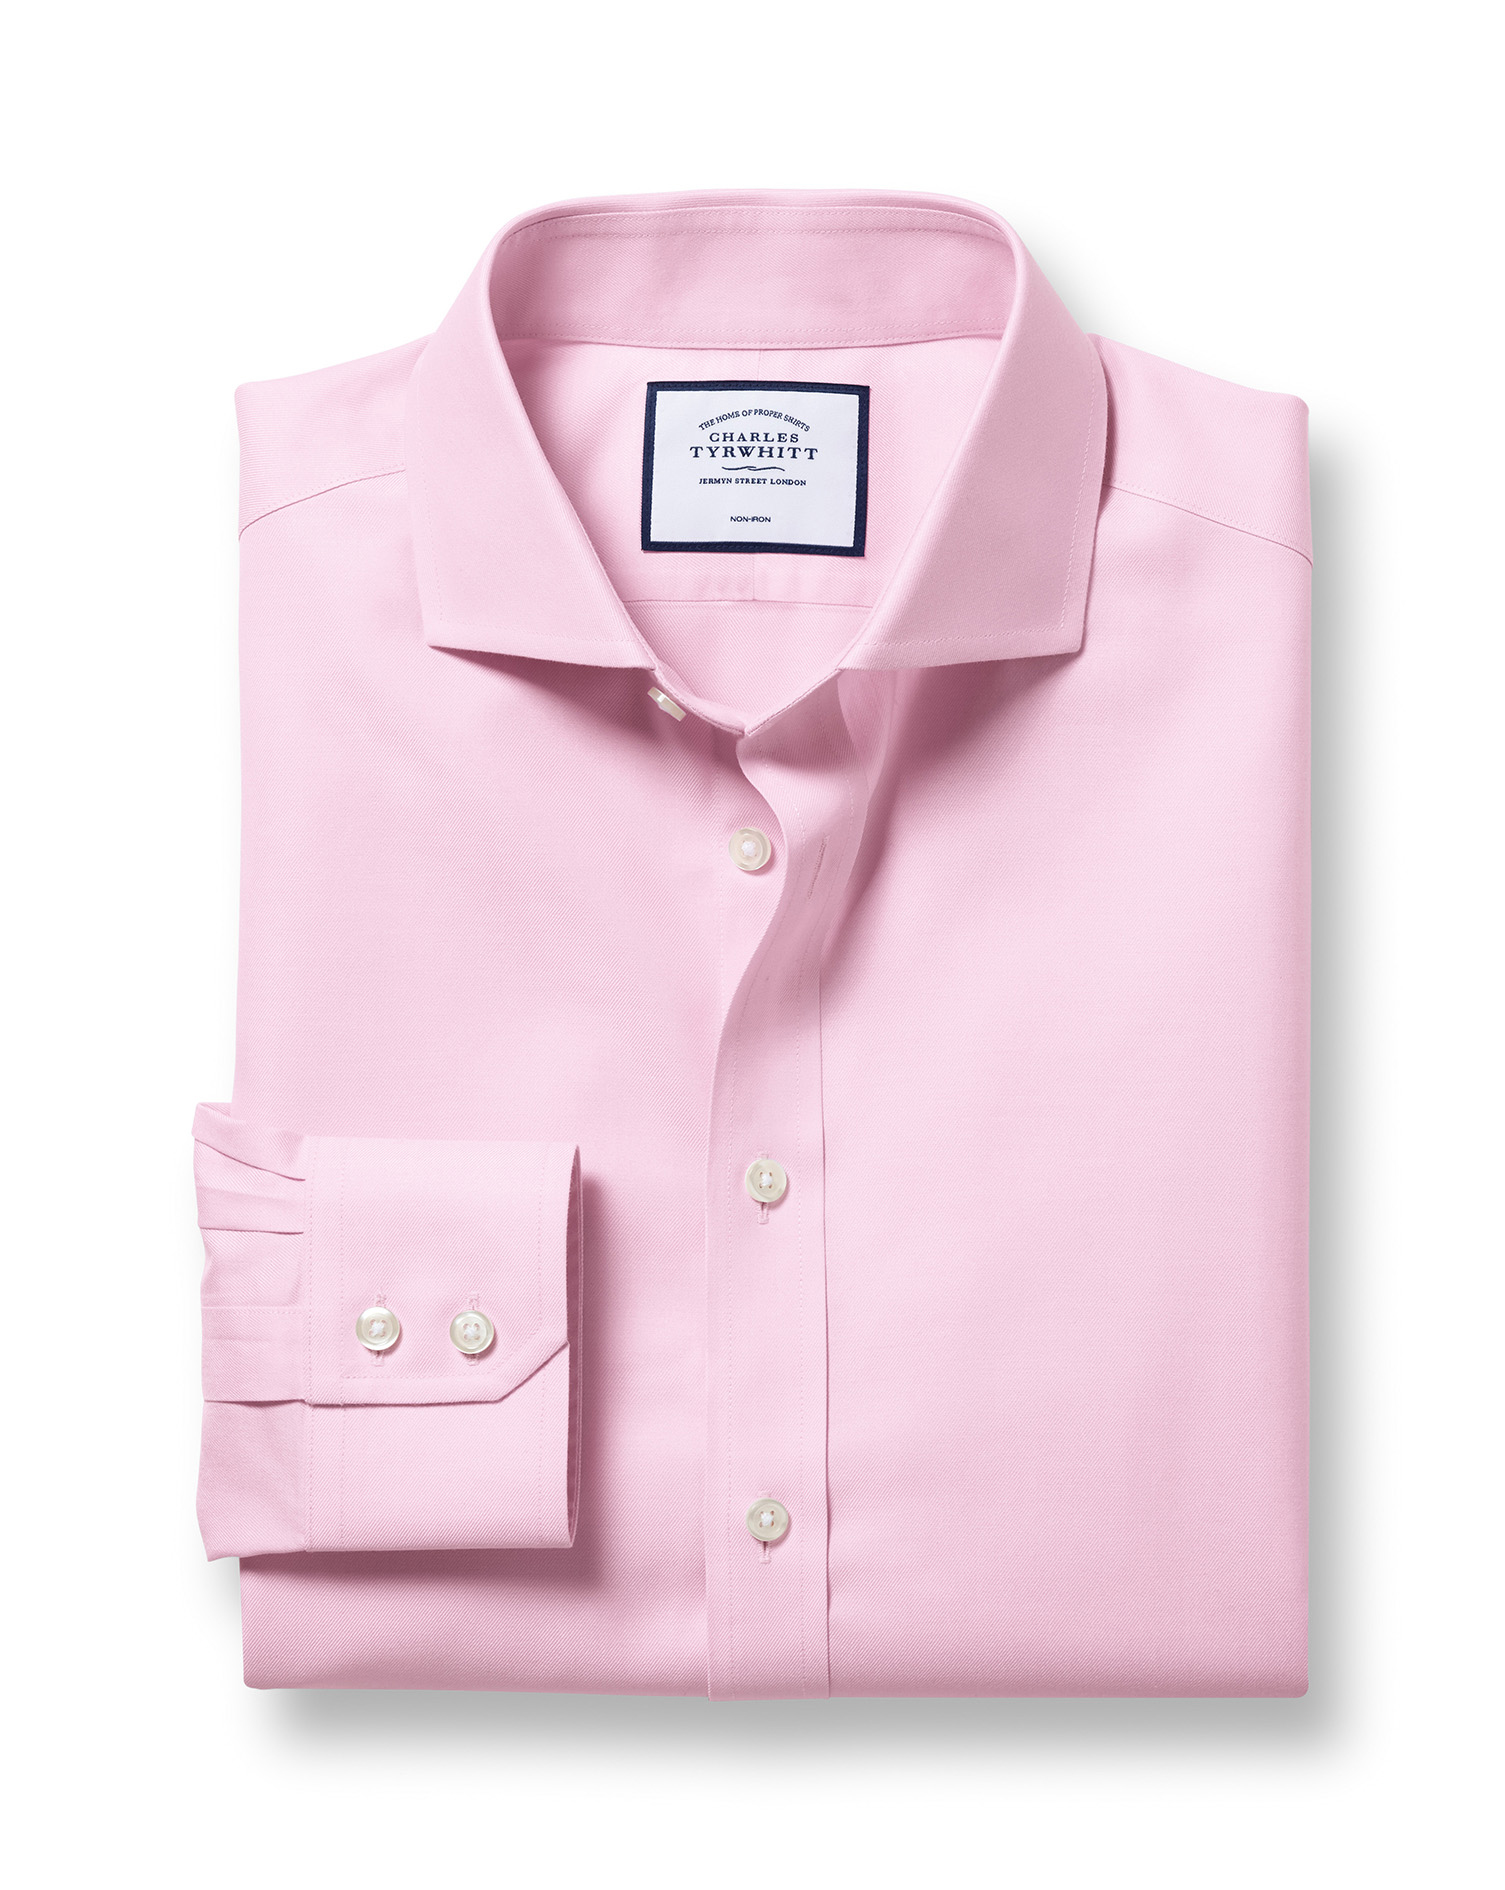 Extra Slim Fit Cutaway Non-Iron Twill Pink Cotton Formal Shirt Single Cuff Size 16/36 by Charles Tyr